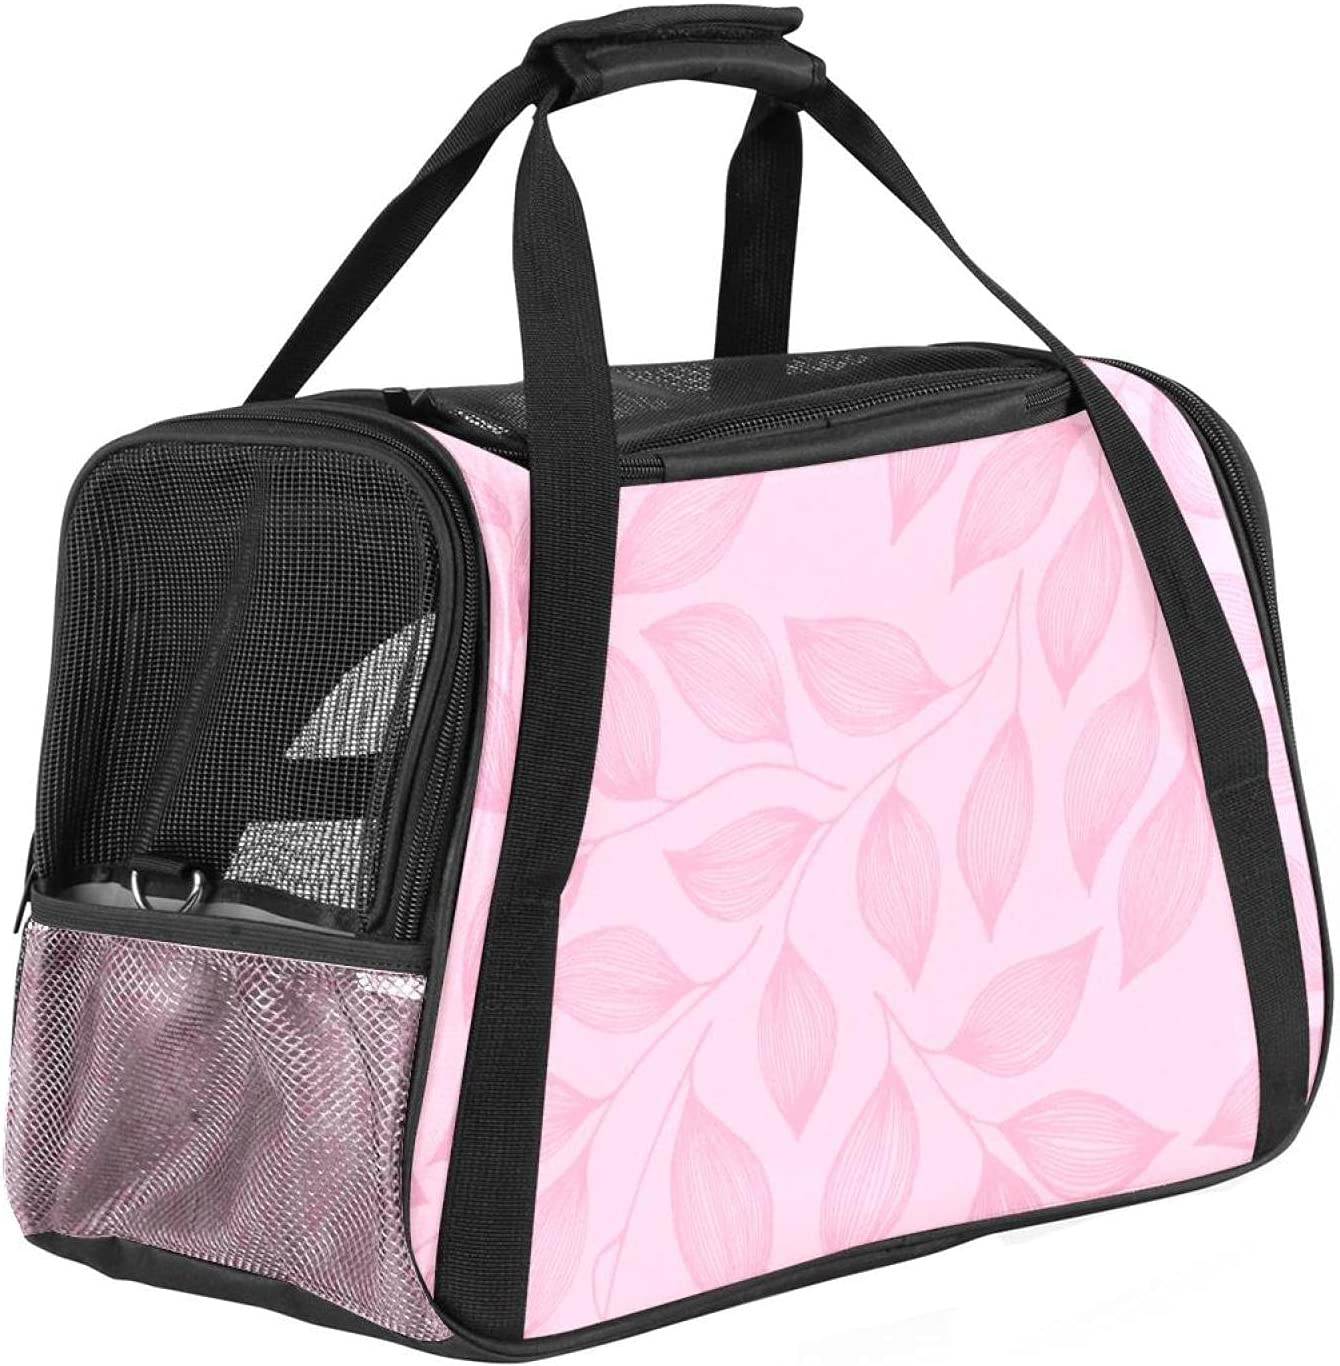 Pet 2021 new Carrier safety for Dog and Tra Airline Soft-Sided Approved Cats